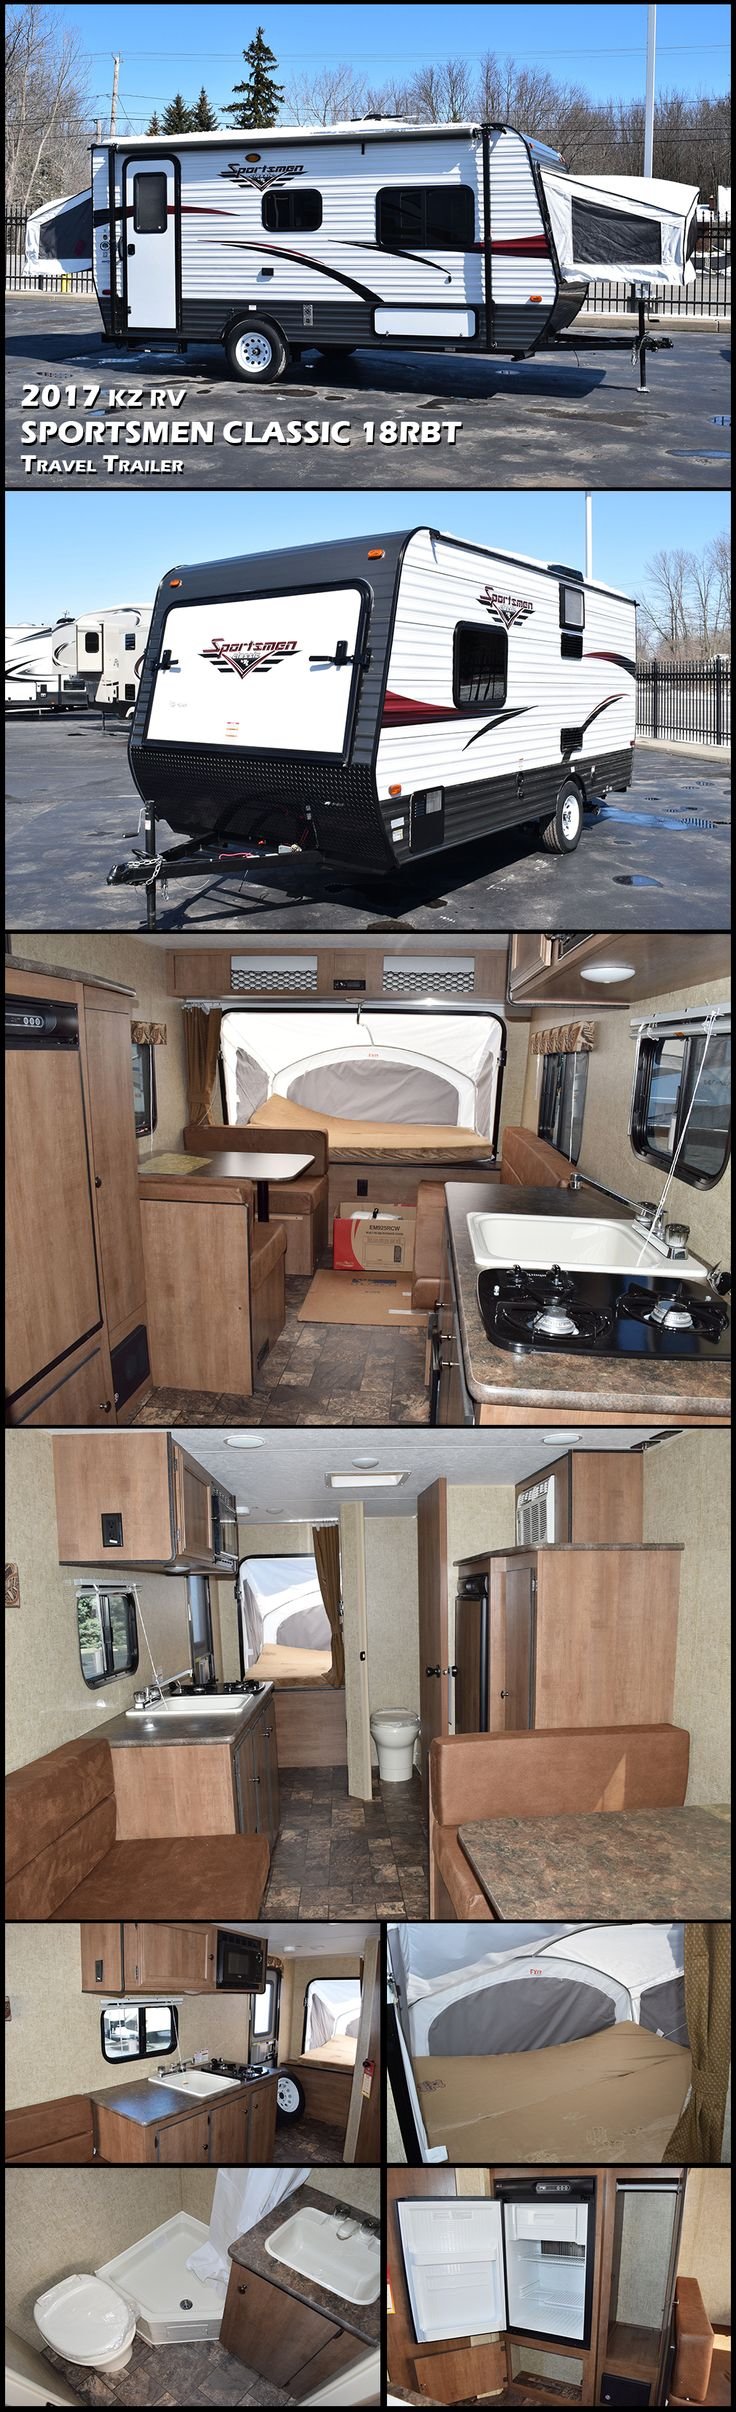 This 2017 KZ RV SPREE ESCAPE E18RBT expandable trailer offers front and rear tent beds, can sleep up to 8 and with its light-weight design it can even be towed by a minivan! The kitchen and complete bath make extended get-a-ways seem just like home.